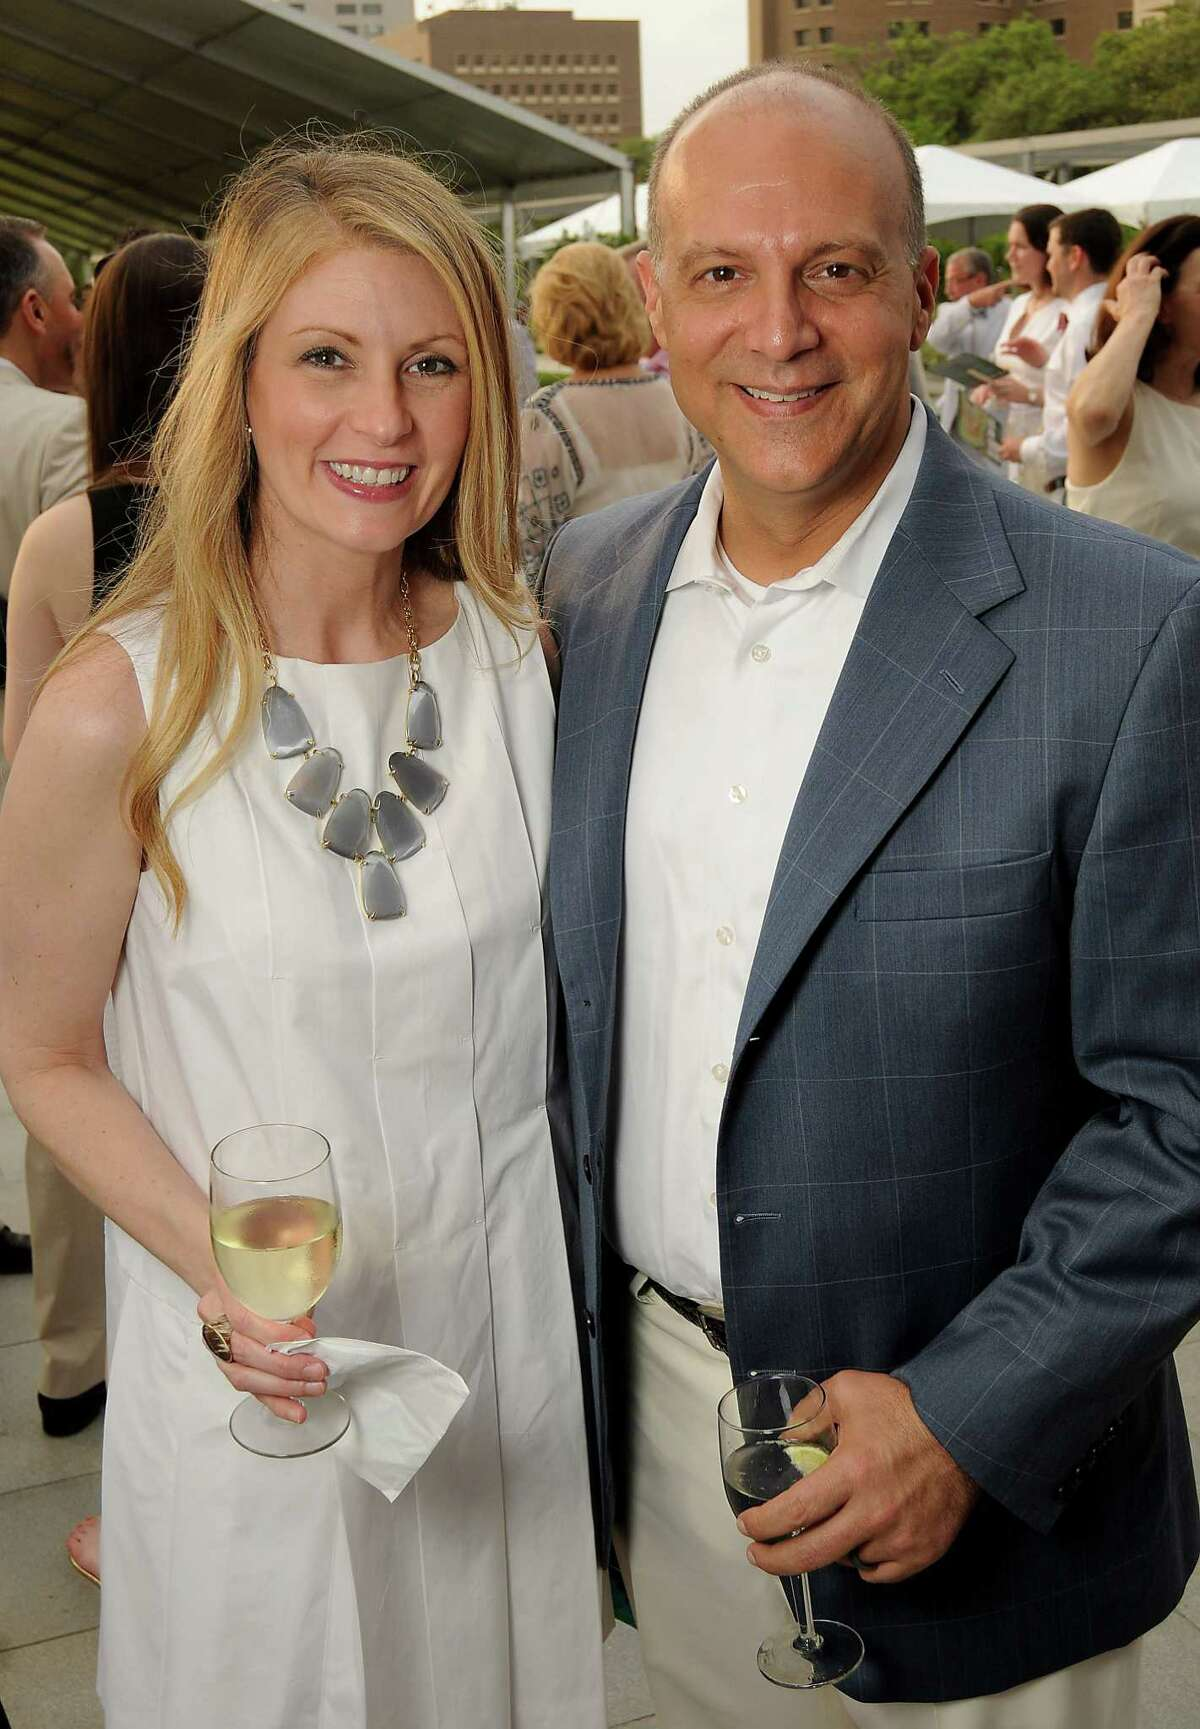 """Kimberly and Dr. Mark Chassay at the Hermann Park Conservancy's """"Evening in the Park"""" Gala at the McGovern Centennial Gardens Friday April 24, 2015.(Dave Rossman photo)"""